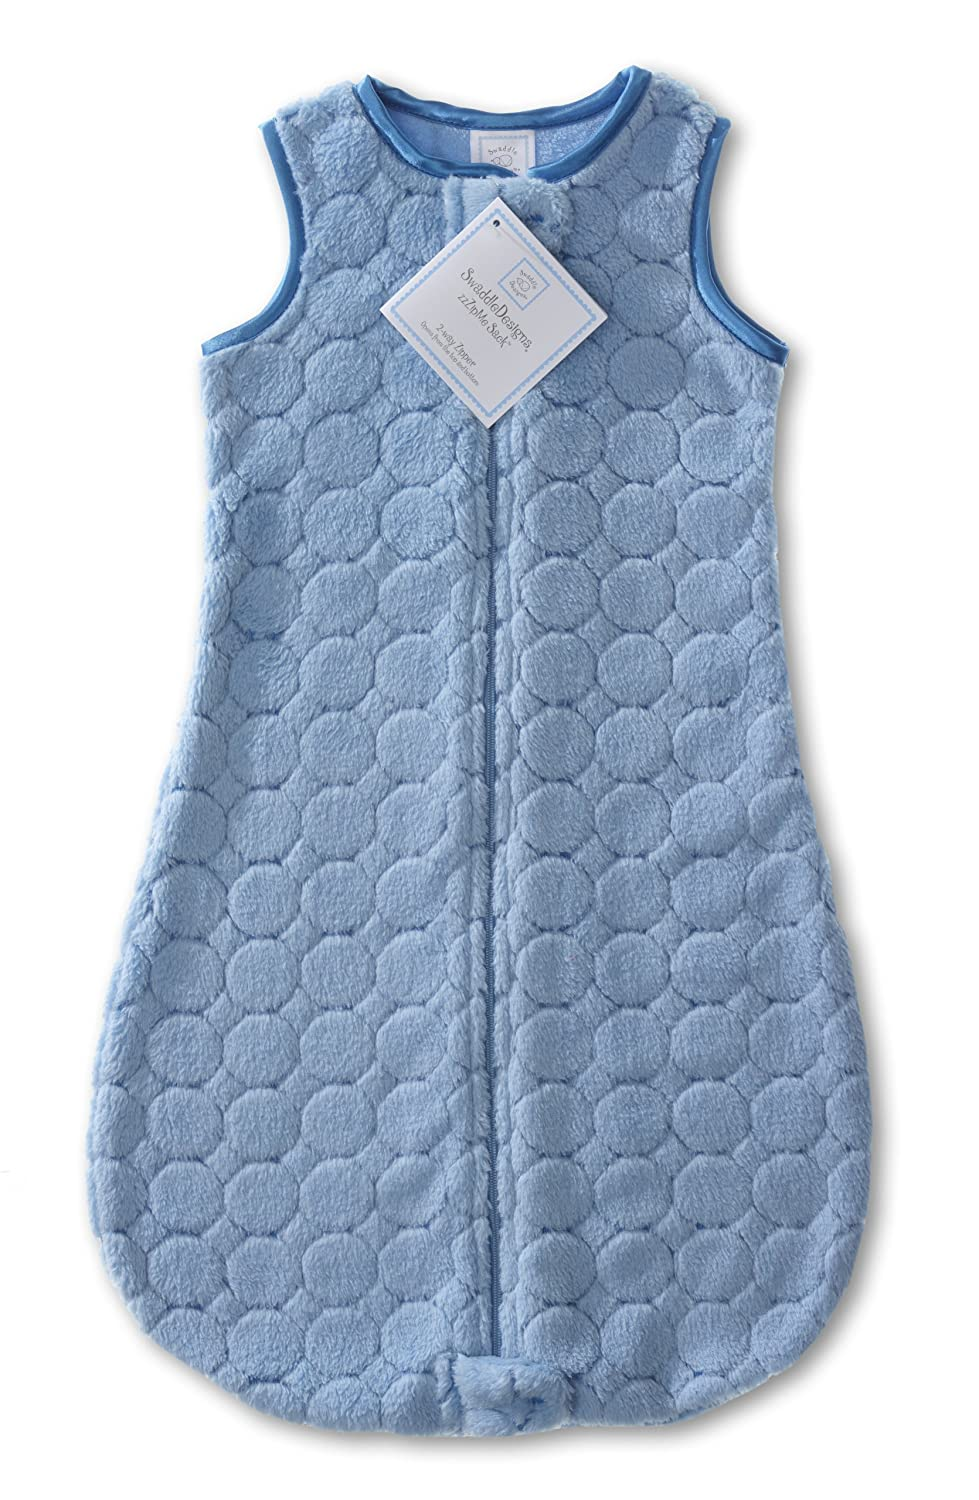 Turquoise Puff Circles; 6-12MO SwaddleDesigns Microplush Sleeping Sack with 2-Way Zipper